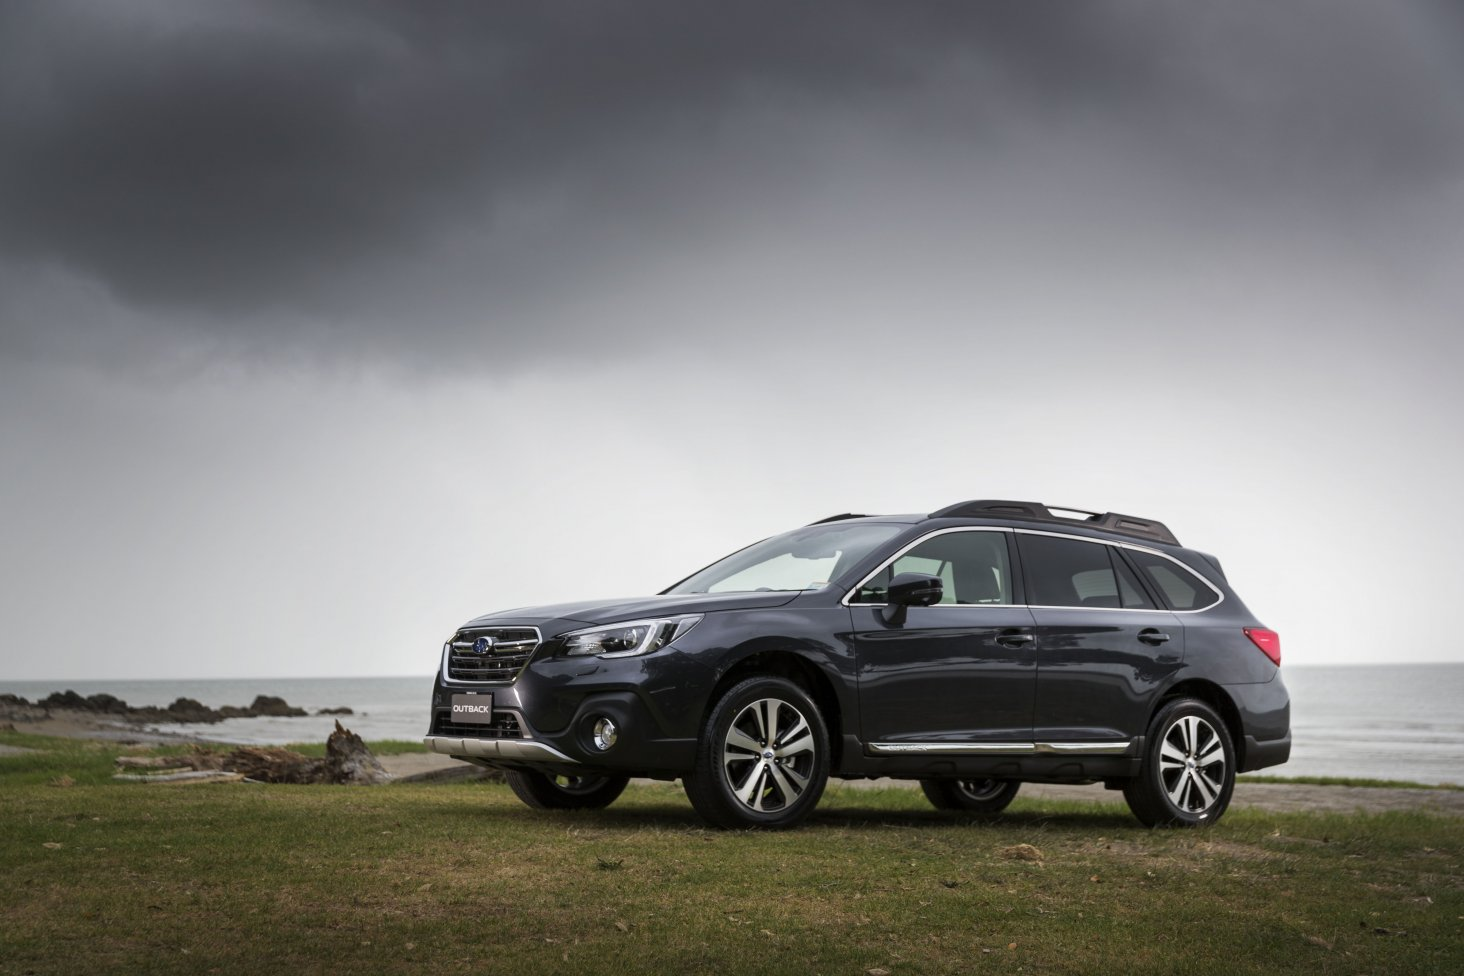 The Subaru Outback will be one of Subaru's three SUV models available to test drive on the SUV track at the Leadfoot Festival this weekend.